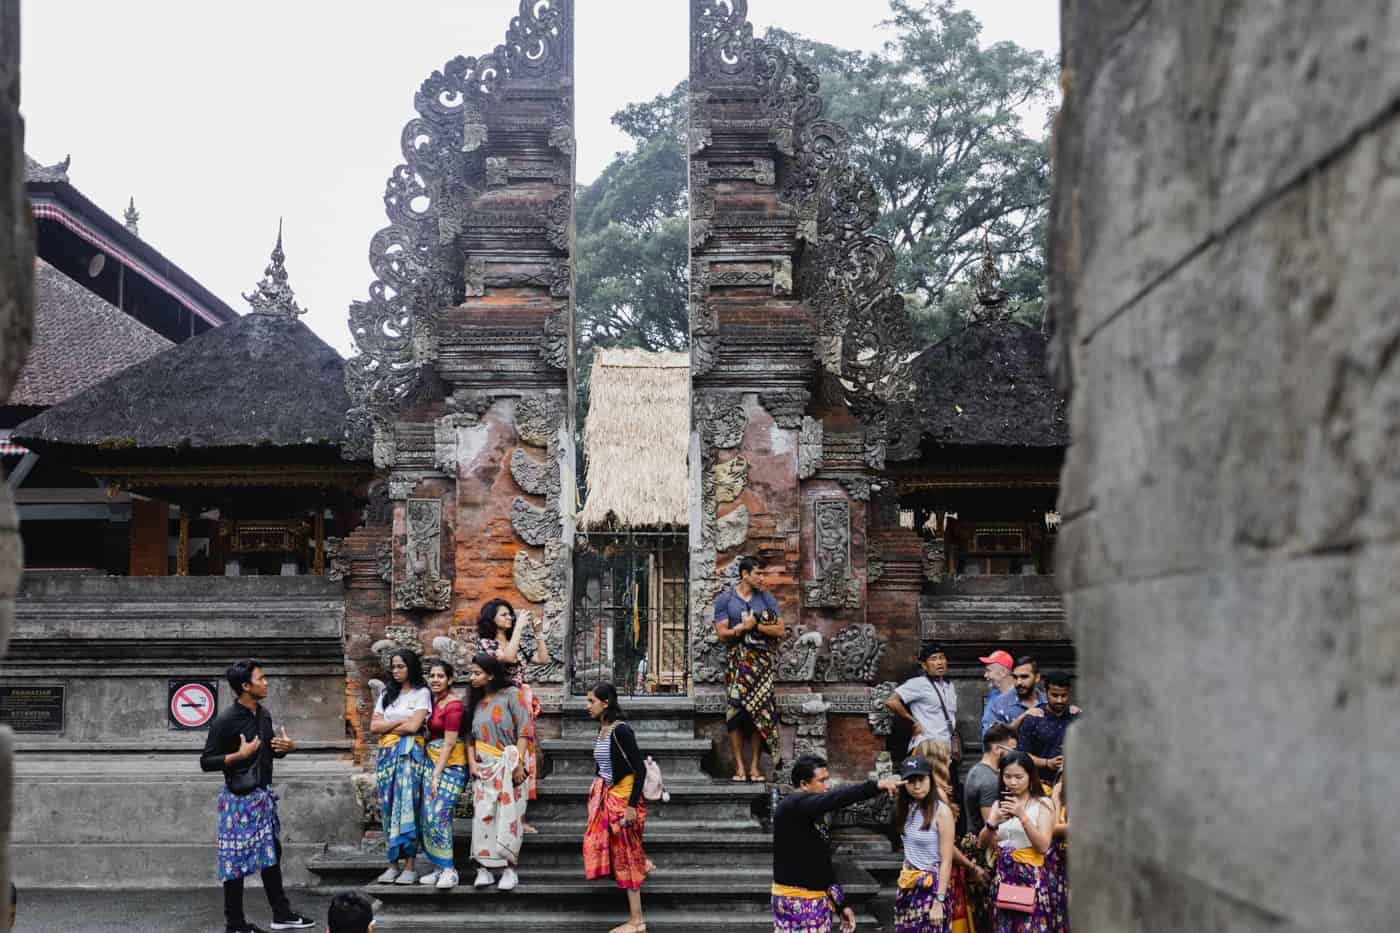 People wearing sarongs at Tirta Empul Temple in Bali